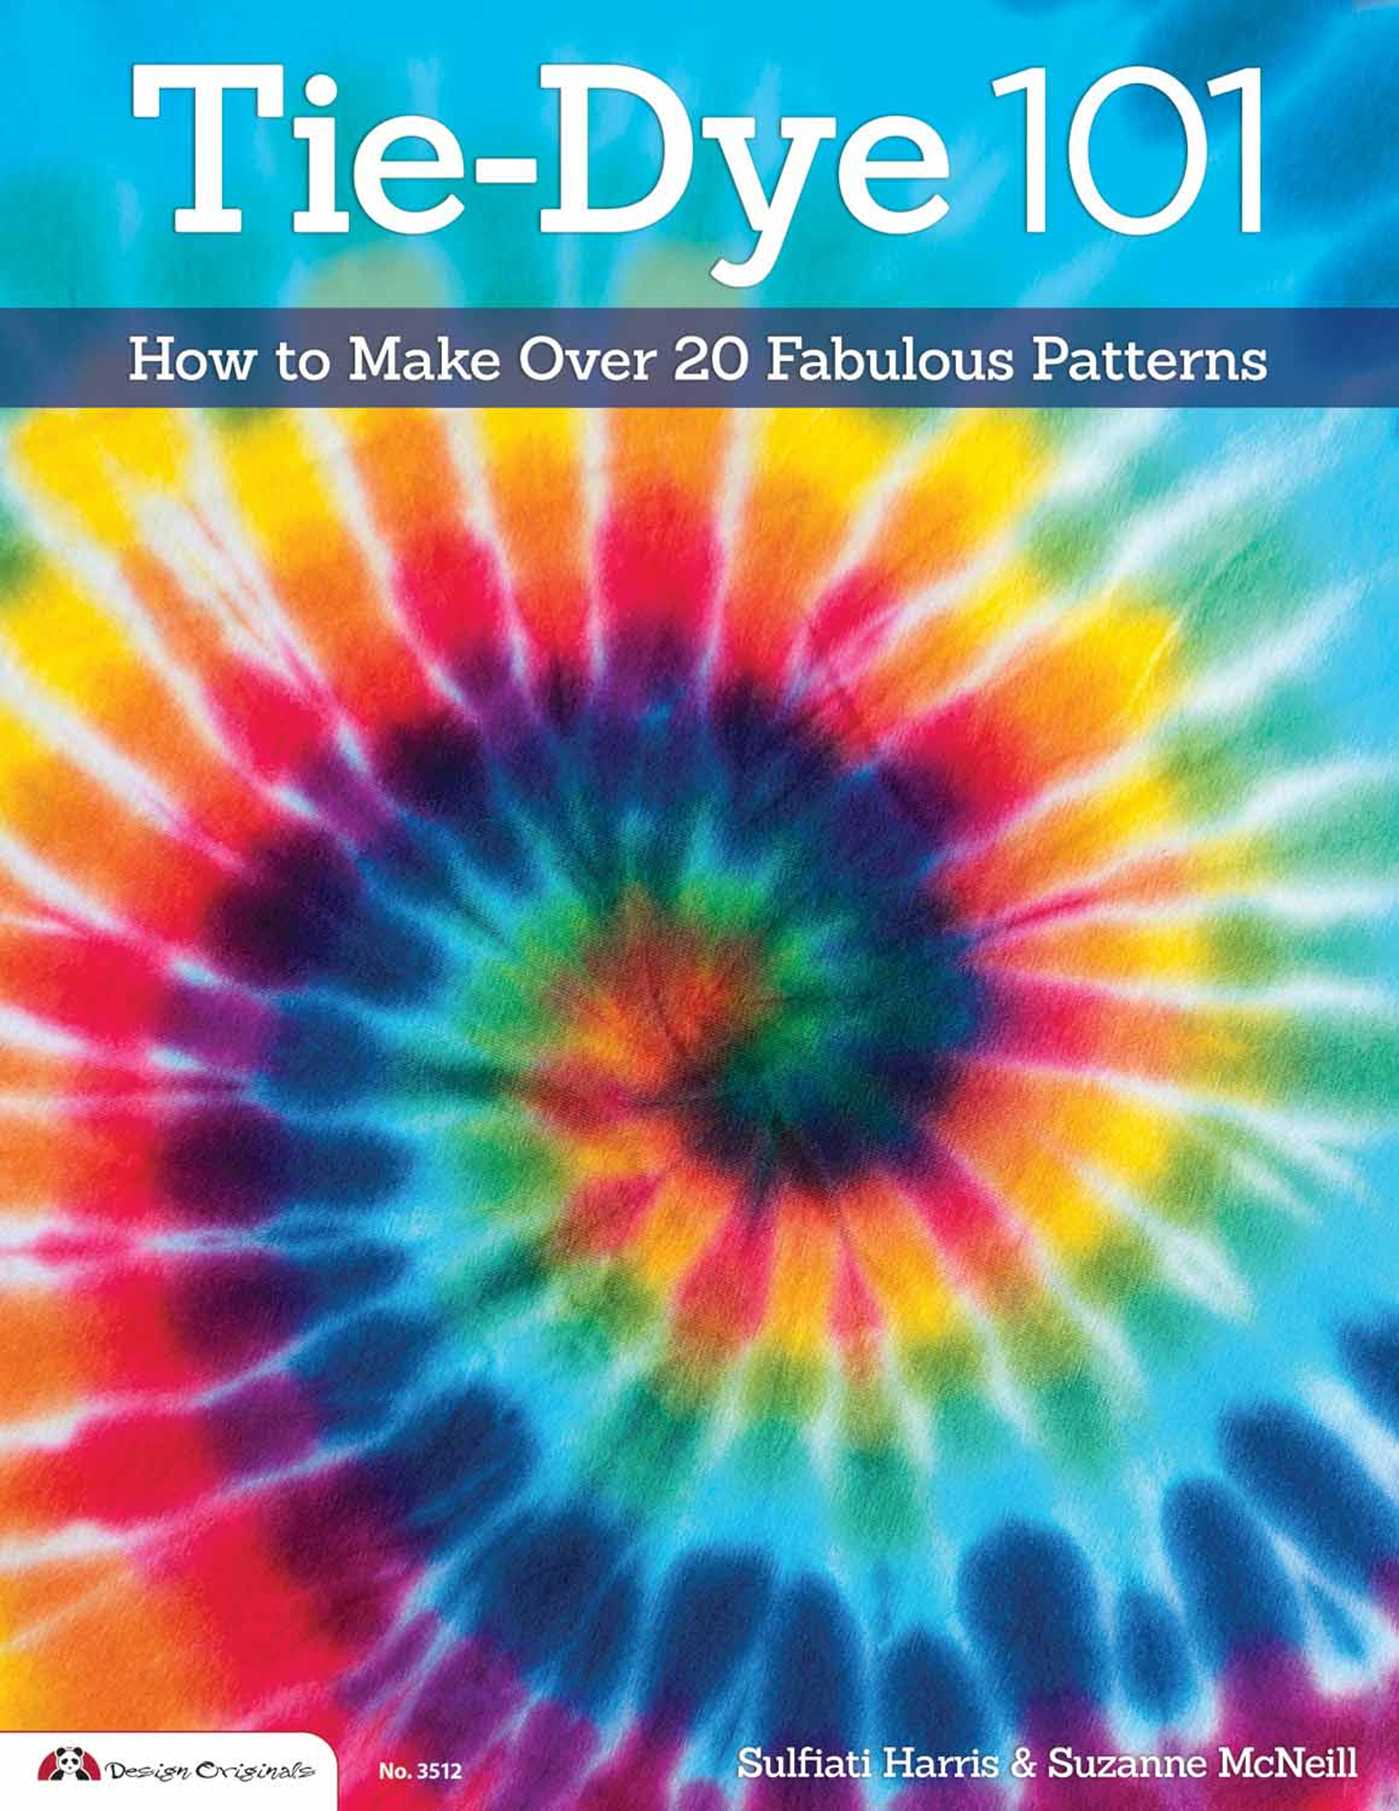 tie dye 101 book by sulfiati harris suzanne mcneill official